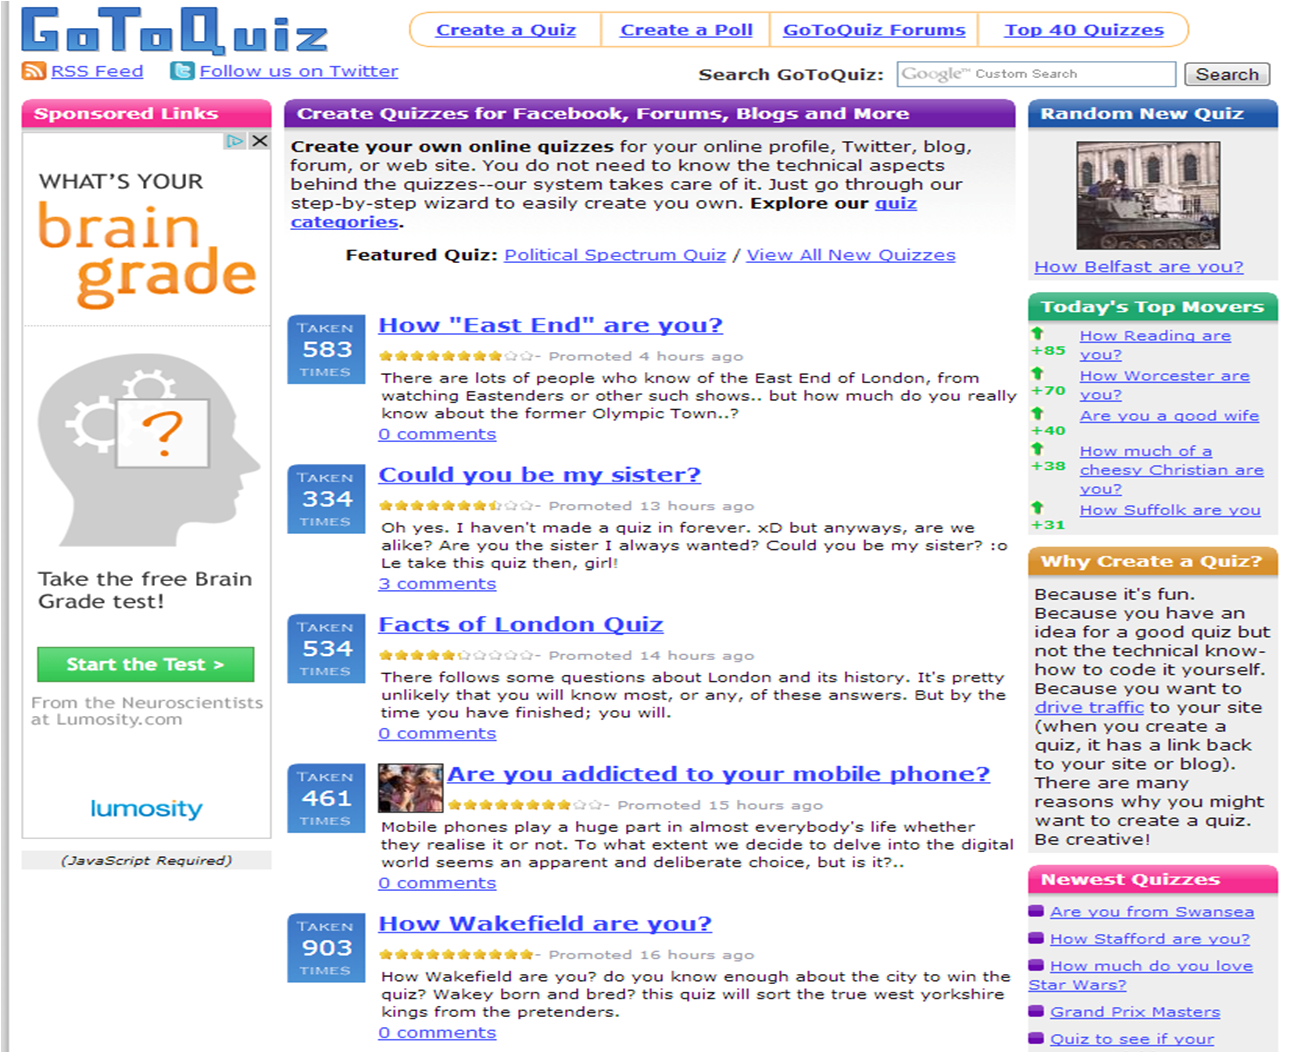 Go to Quiz: Create Quizzes for Facebook, Forums, Blogs and